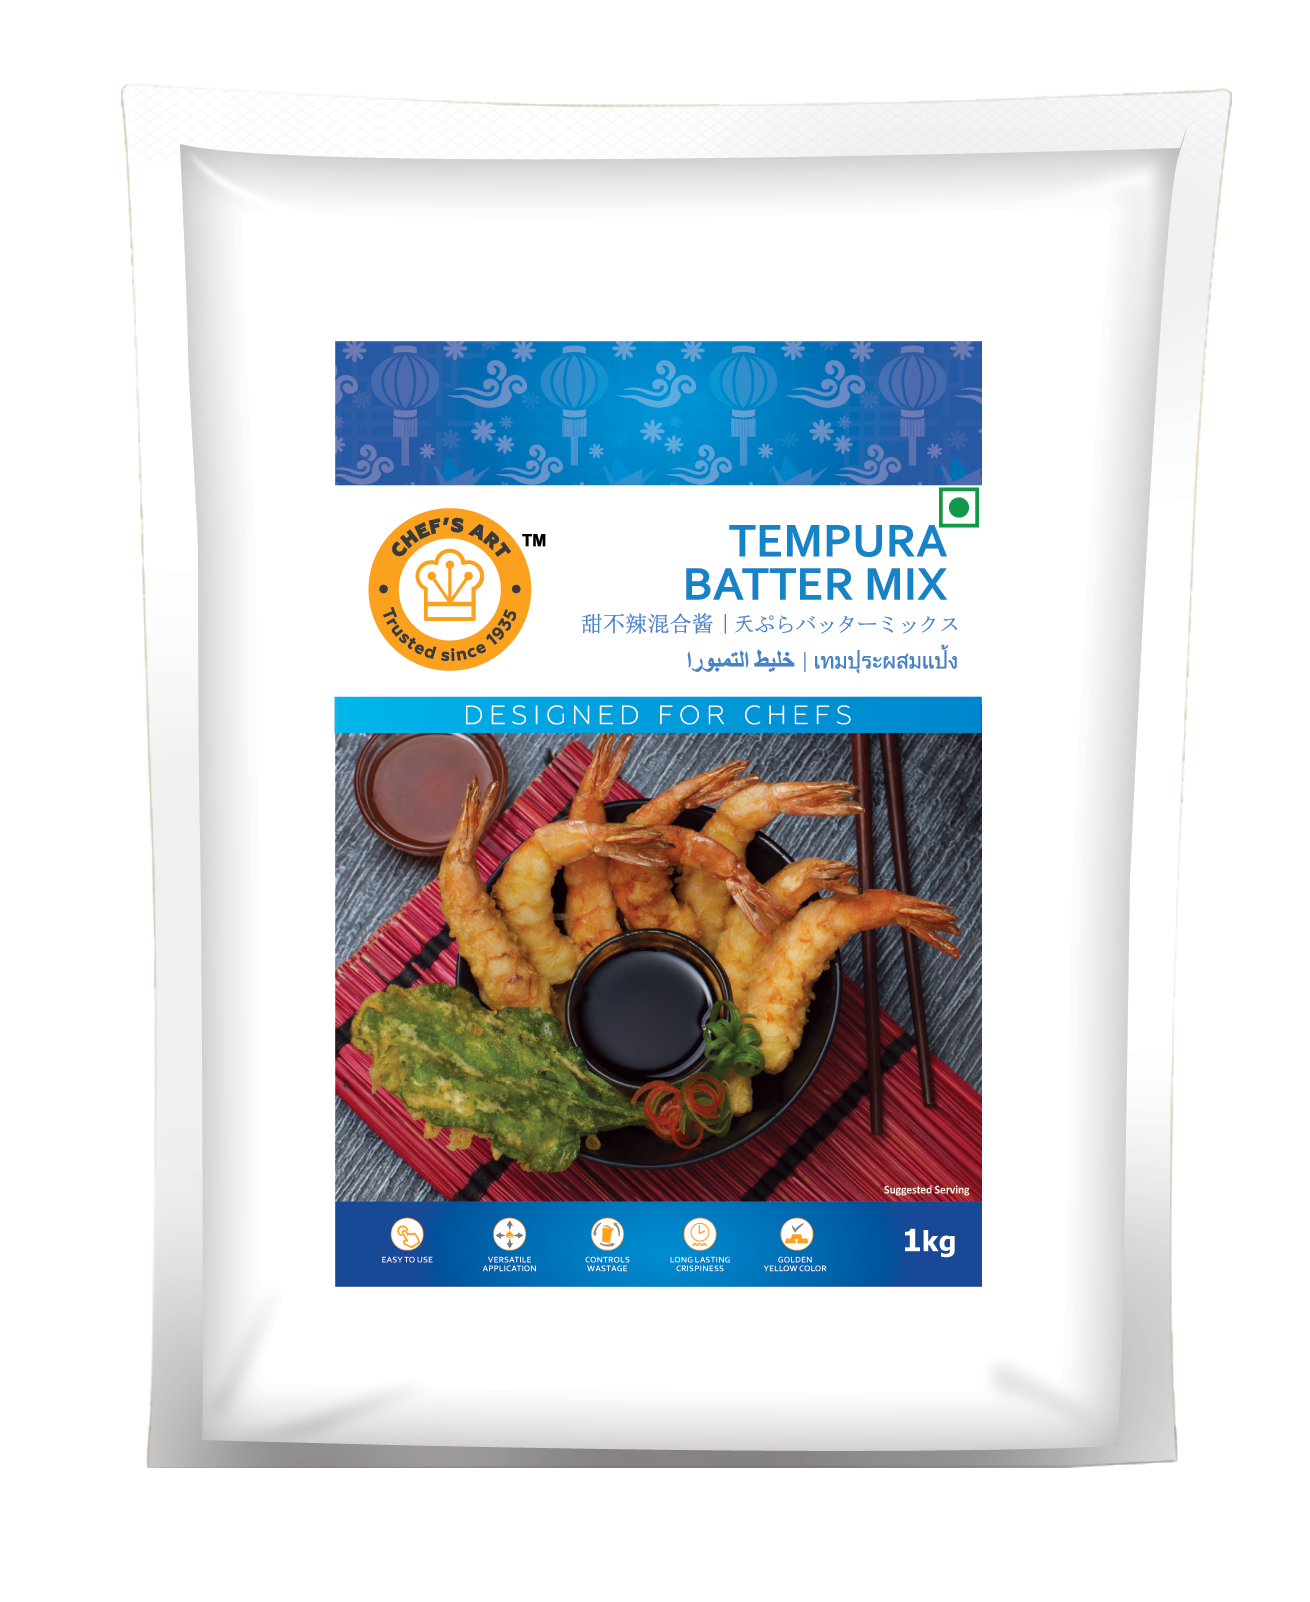 Tempura Batter Mix Food Service India